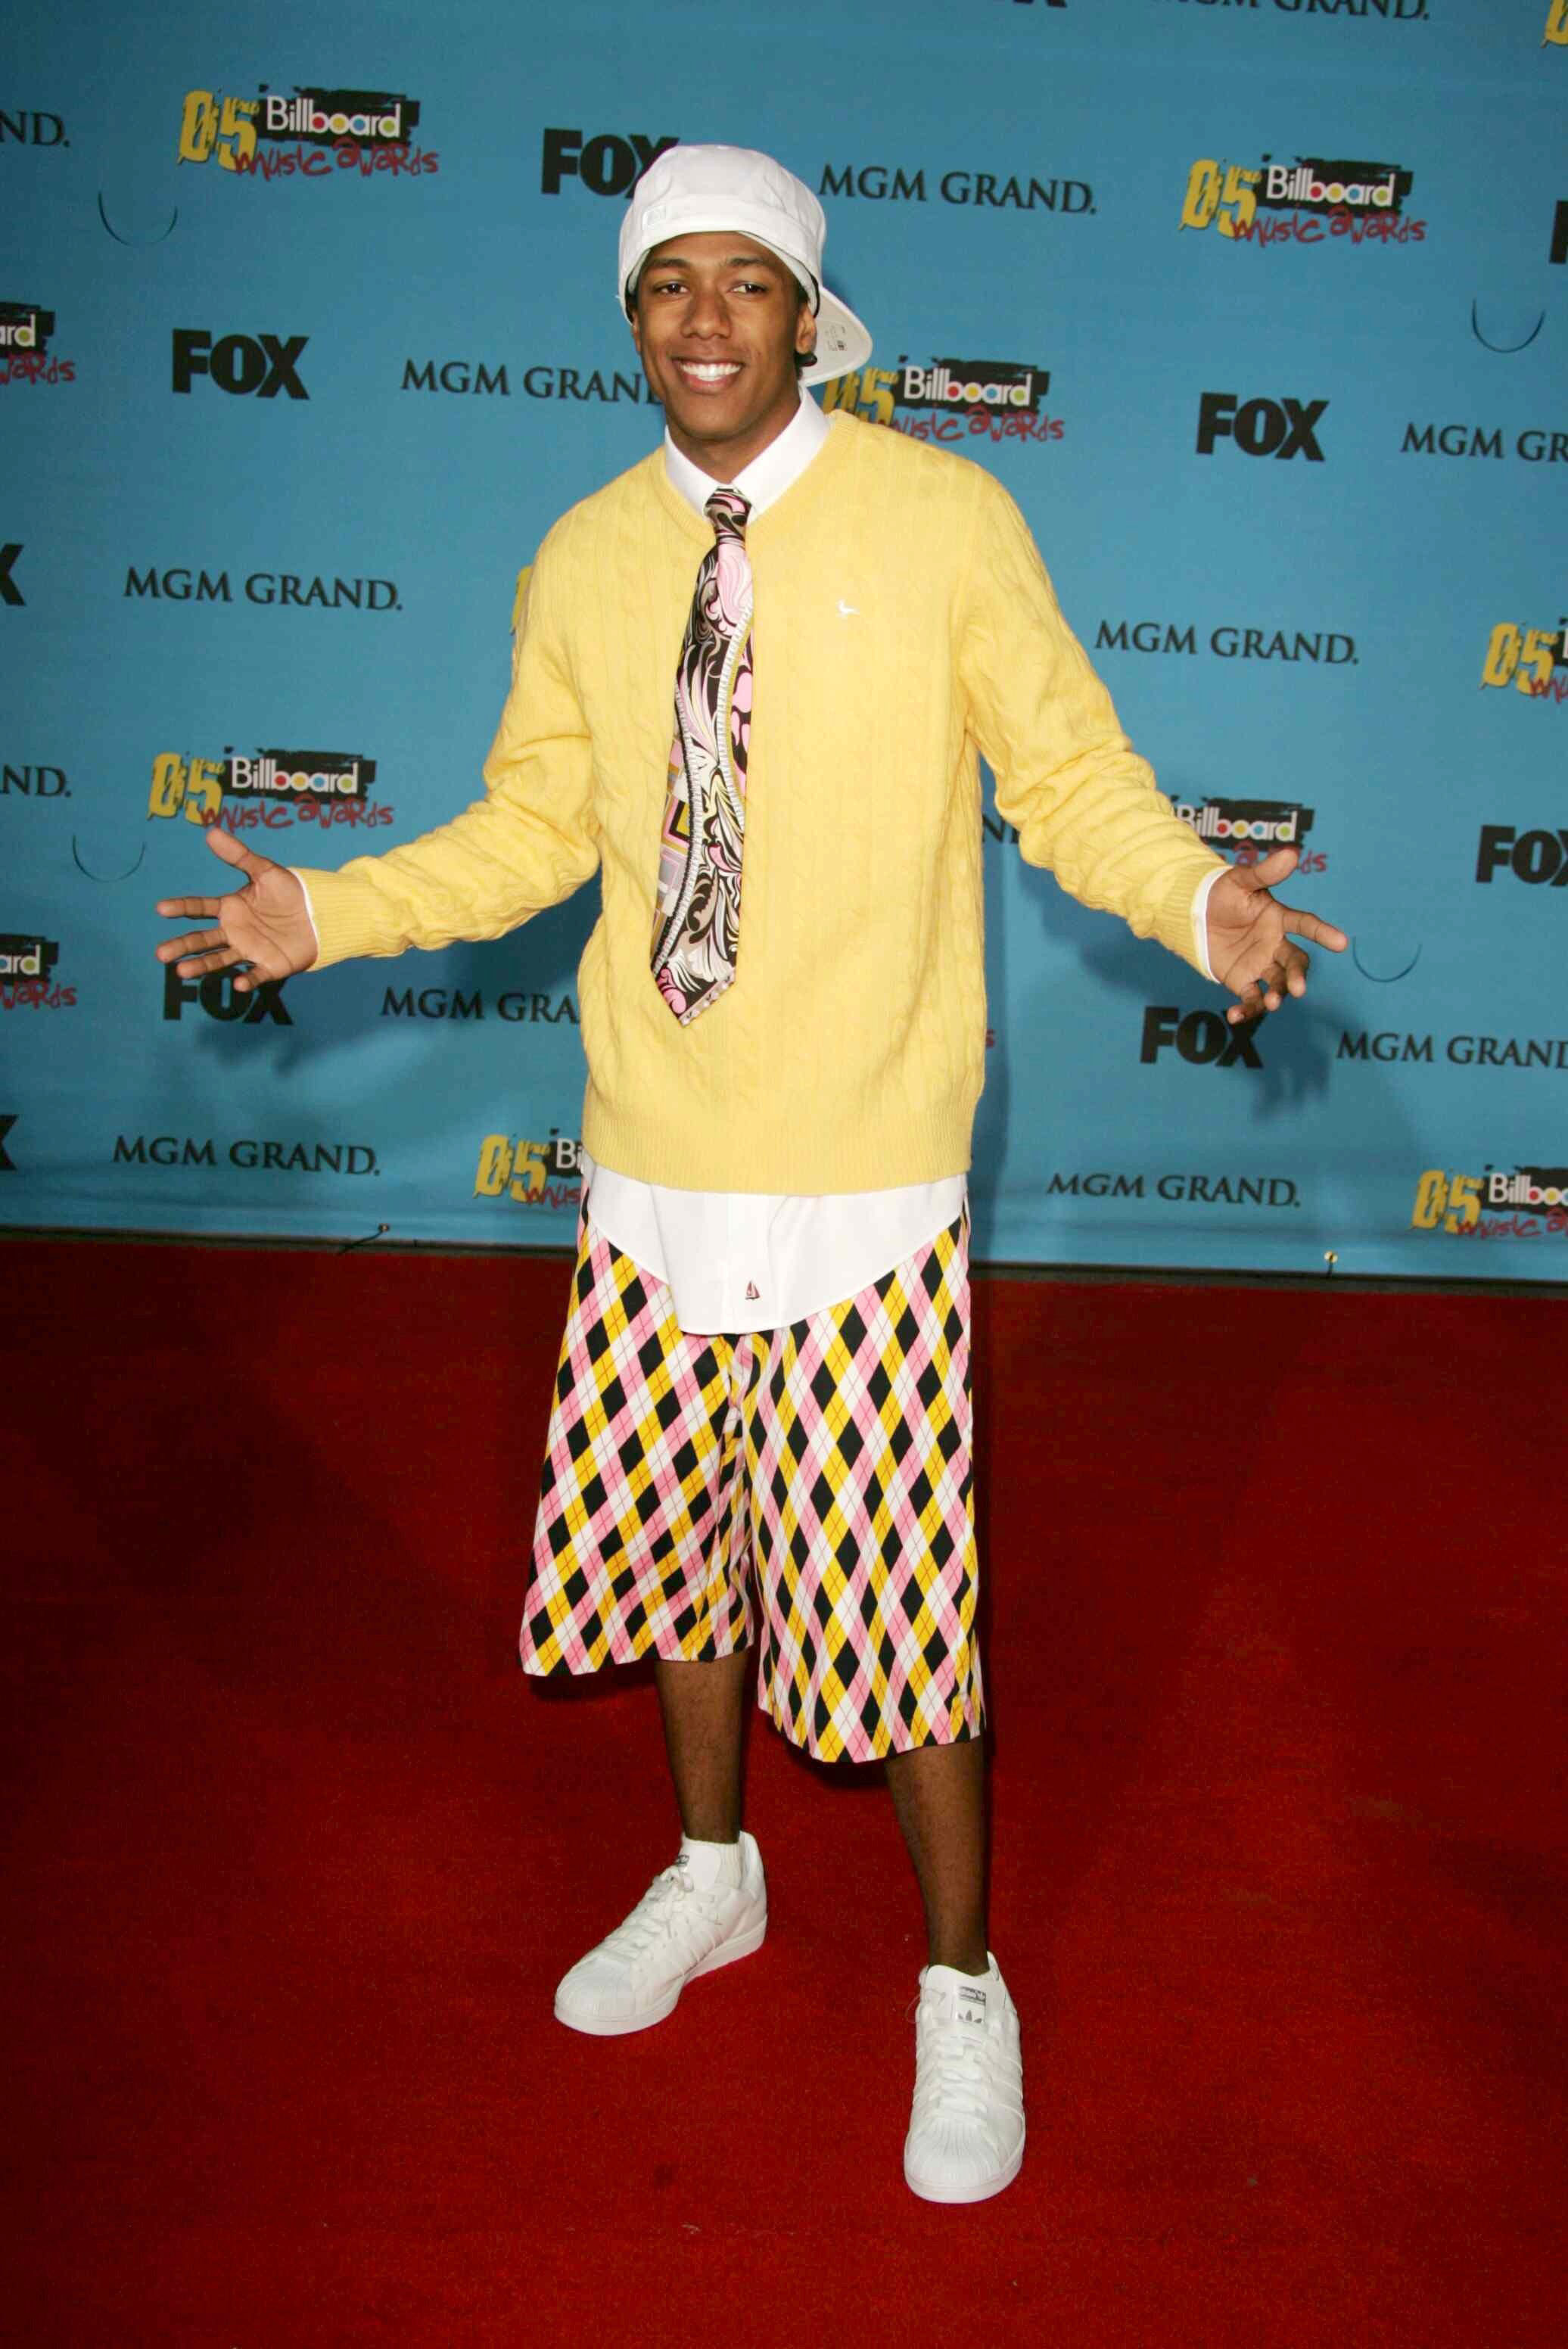 Nick Cannon attends the Billboard Music Awards in Las Vegas on Dec. 6, 2005.